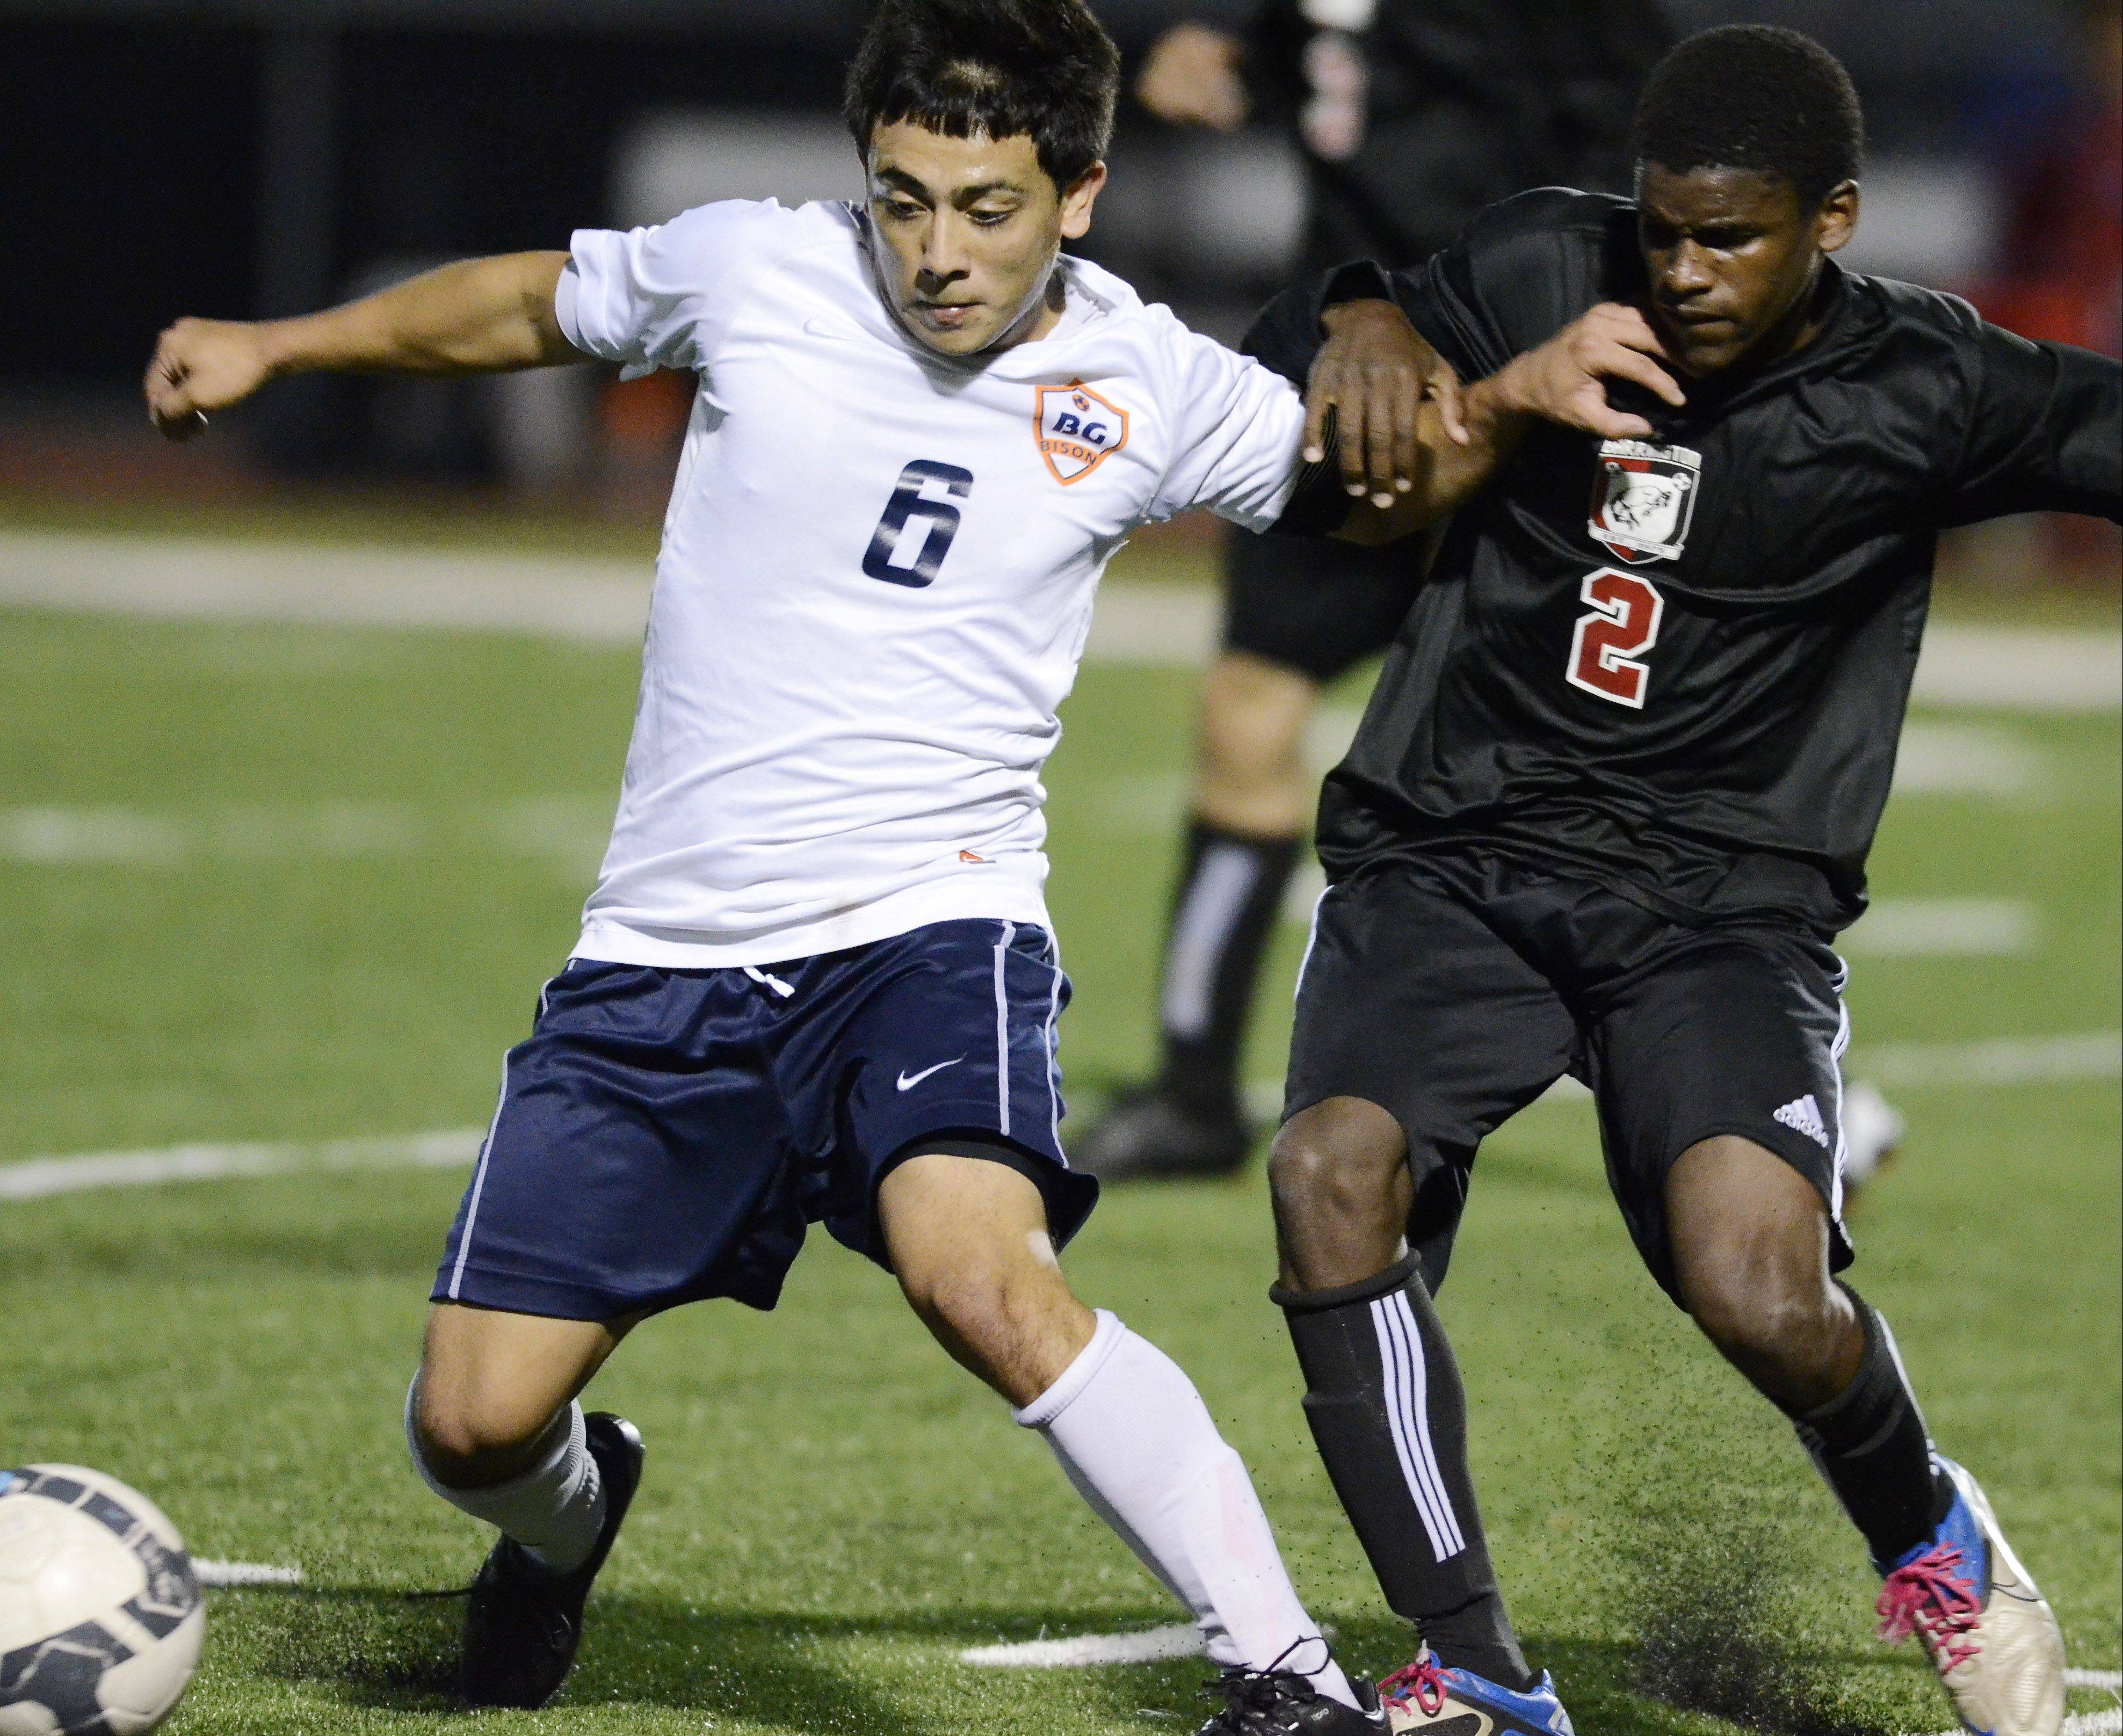 Buffalo Grove's Irving Eloiza, left, and Barrington all-area forward Kendall Stork make contact as they pursue the ball in an MSL contest this fall.